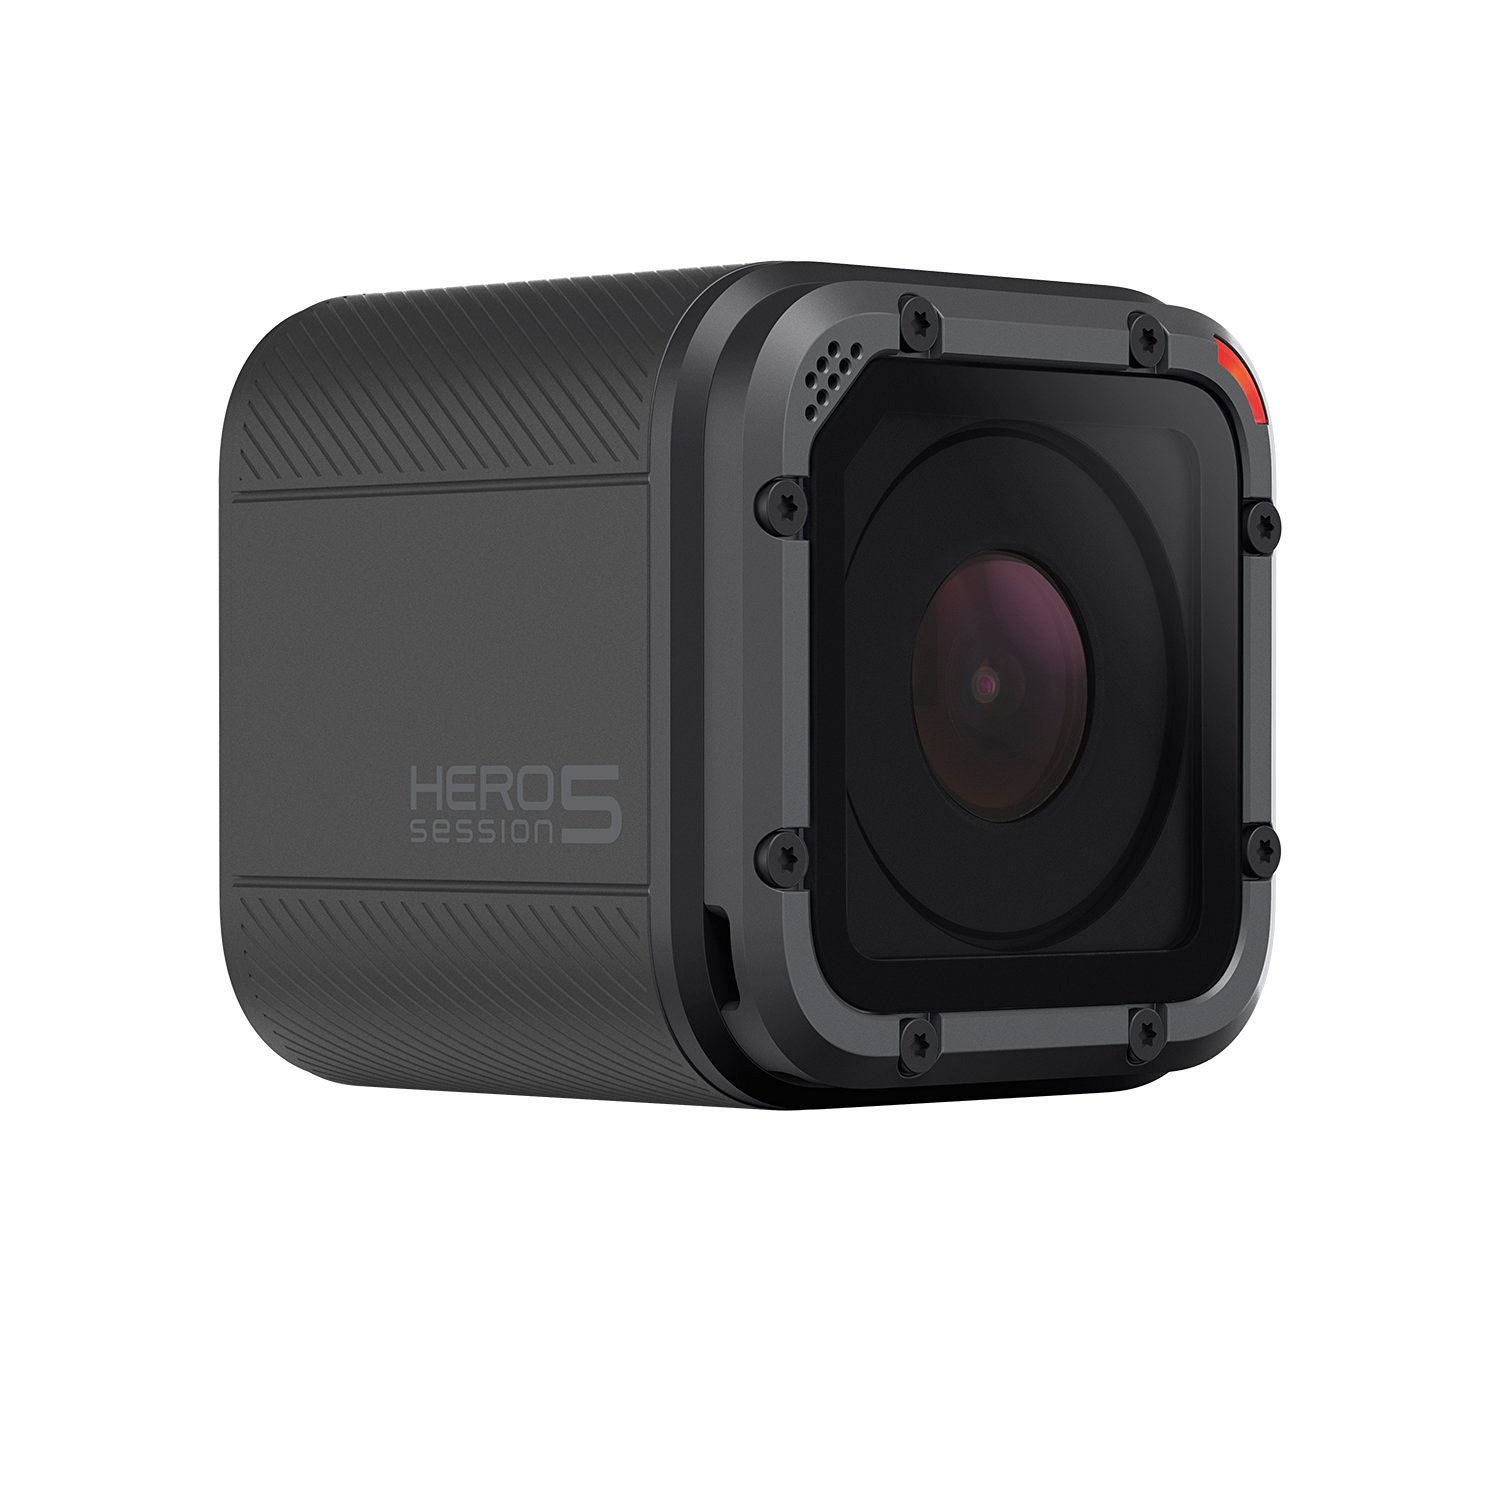 🔥 Bon plan : la GoPro Hero 5 Session est disponible à 164 euros